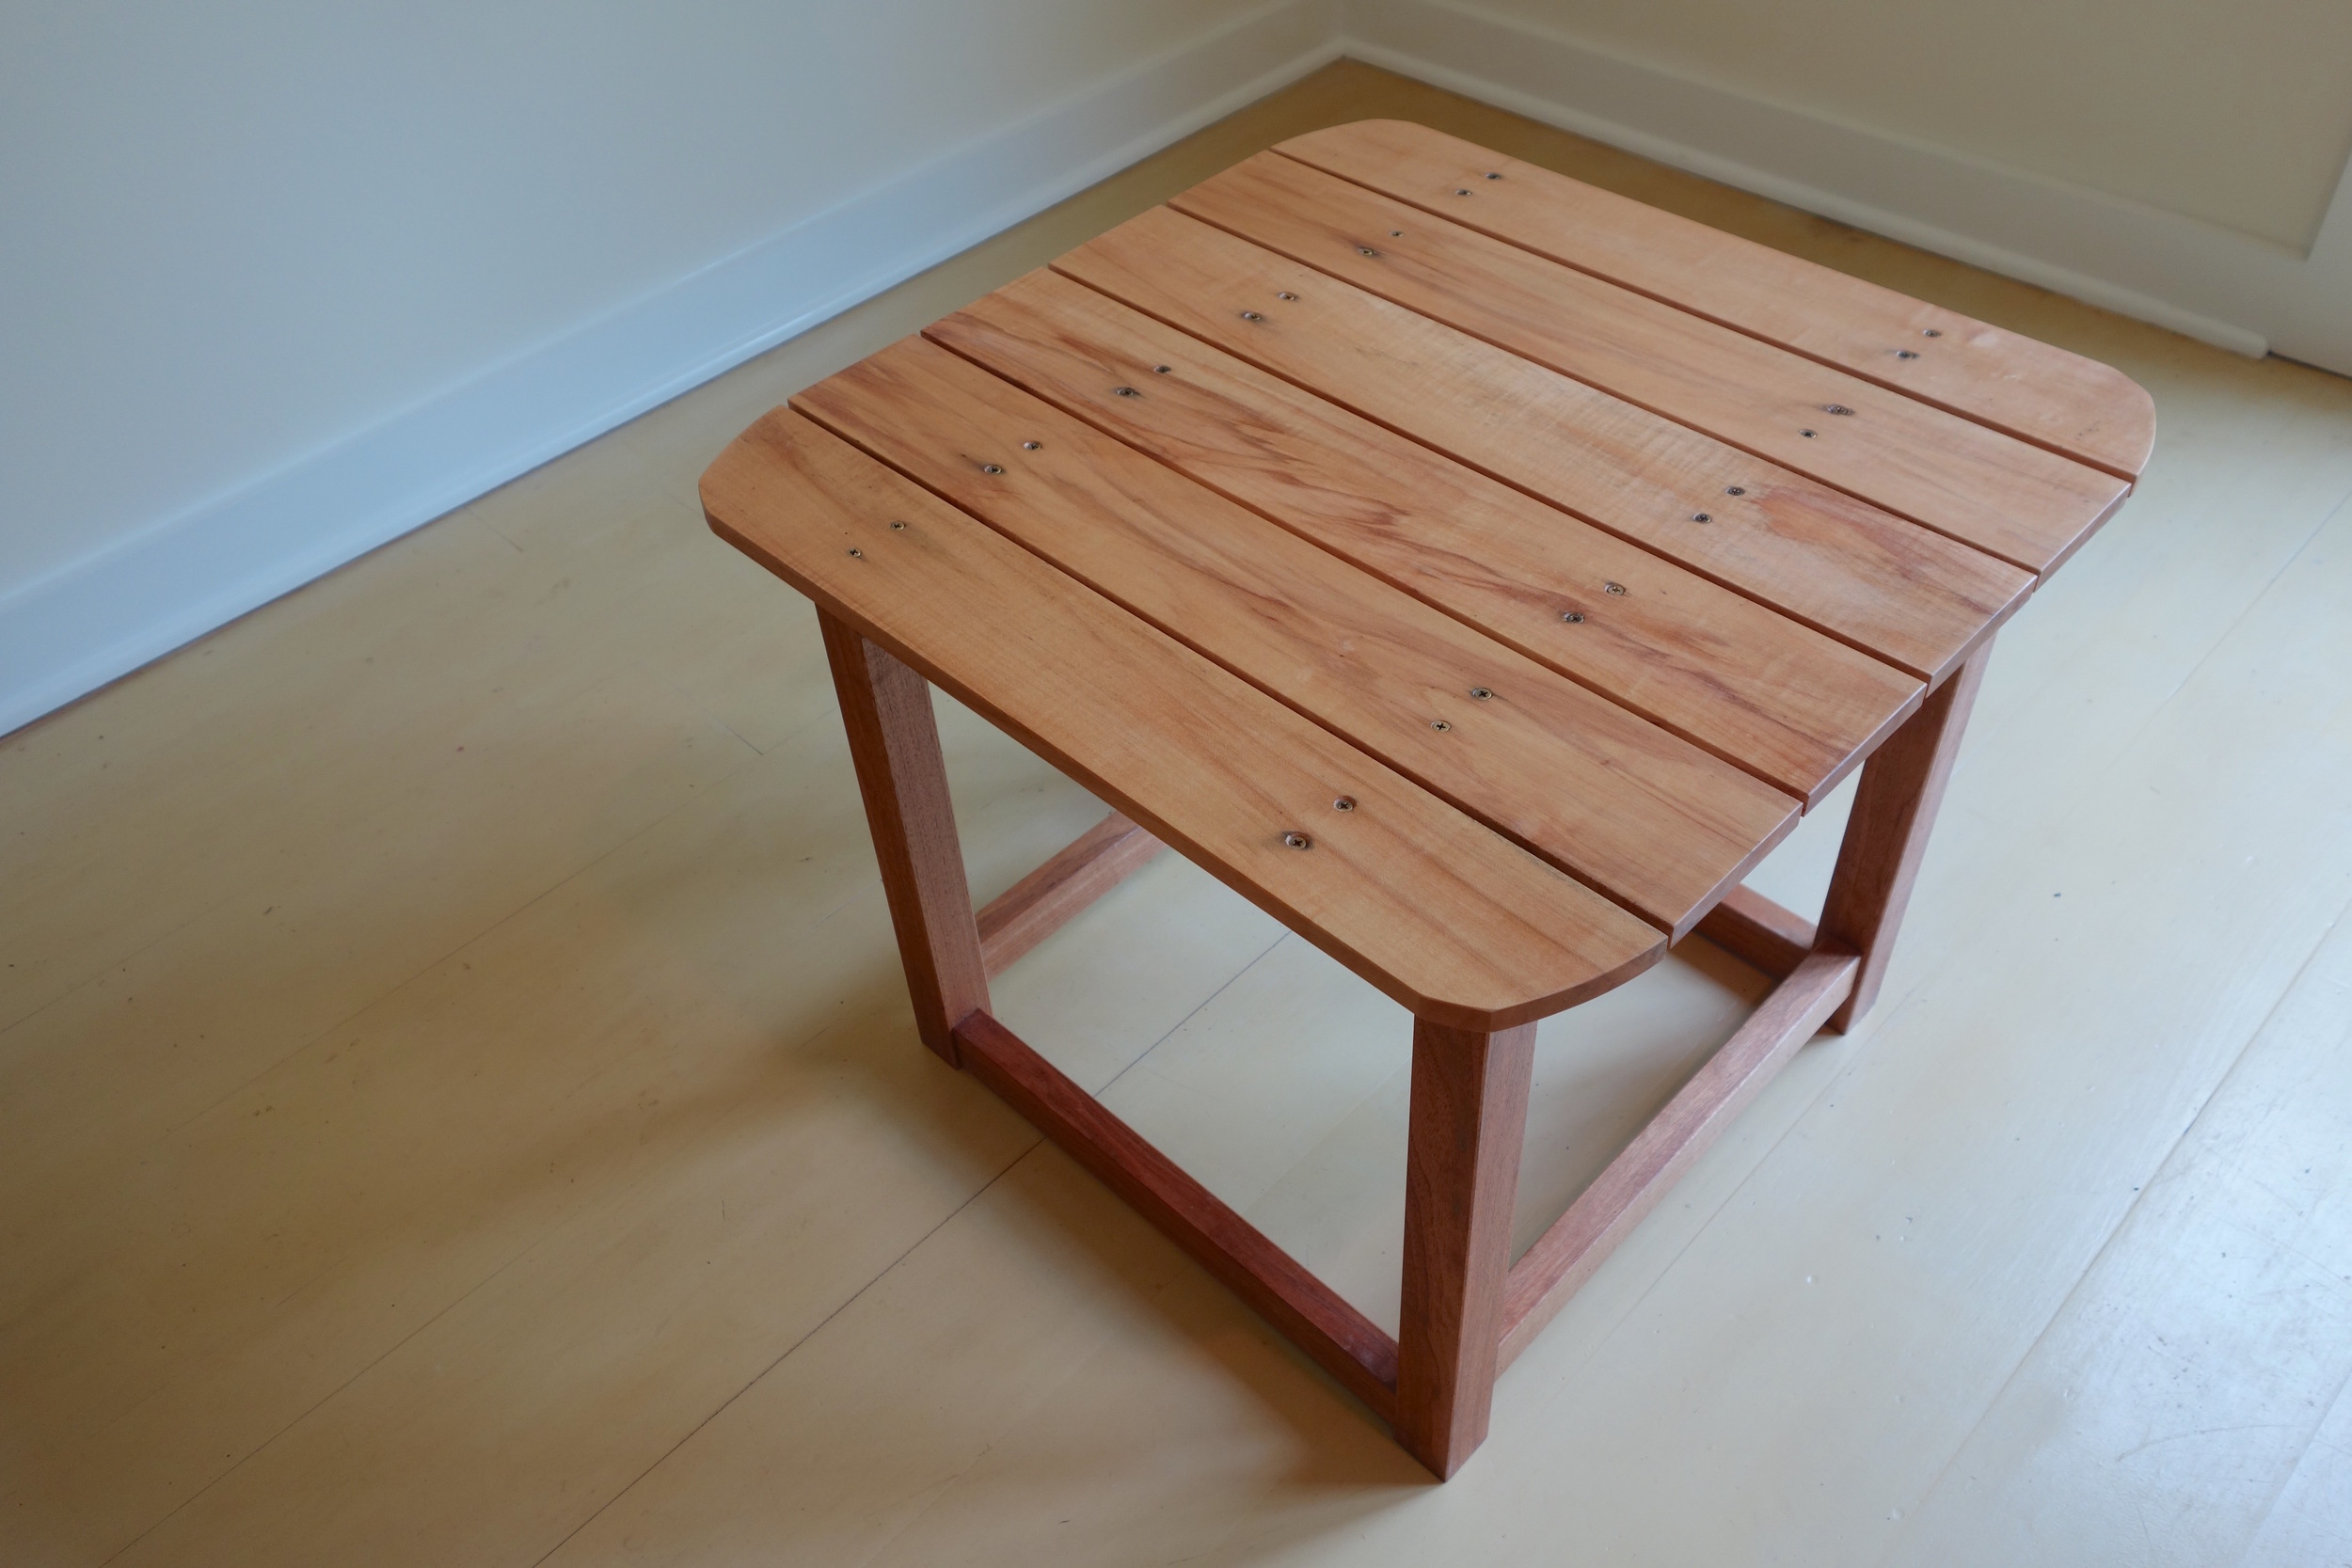 Cubie_Outdoor_Table_4.jpg